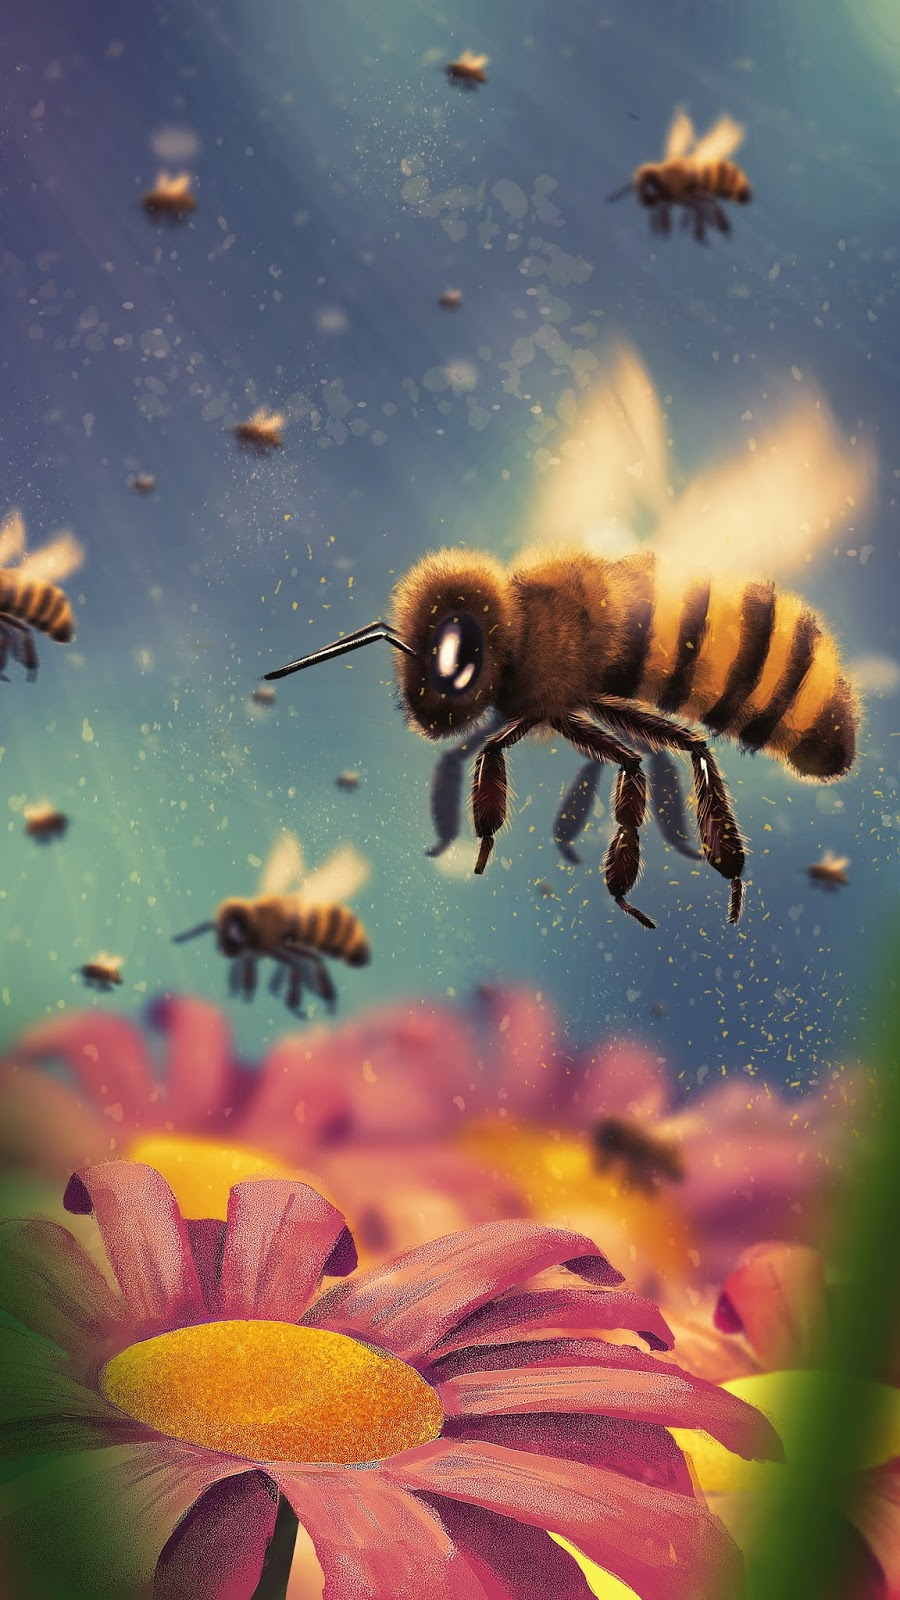 a beautiful illustration of bees and flowers in 4k or hd to use as phone wallpaper